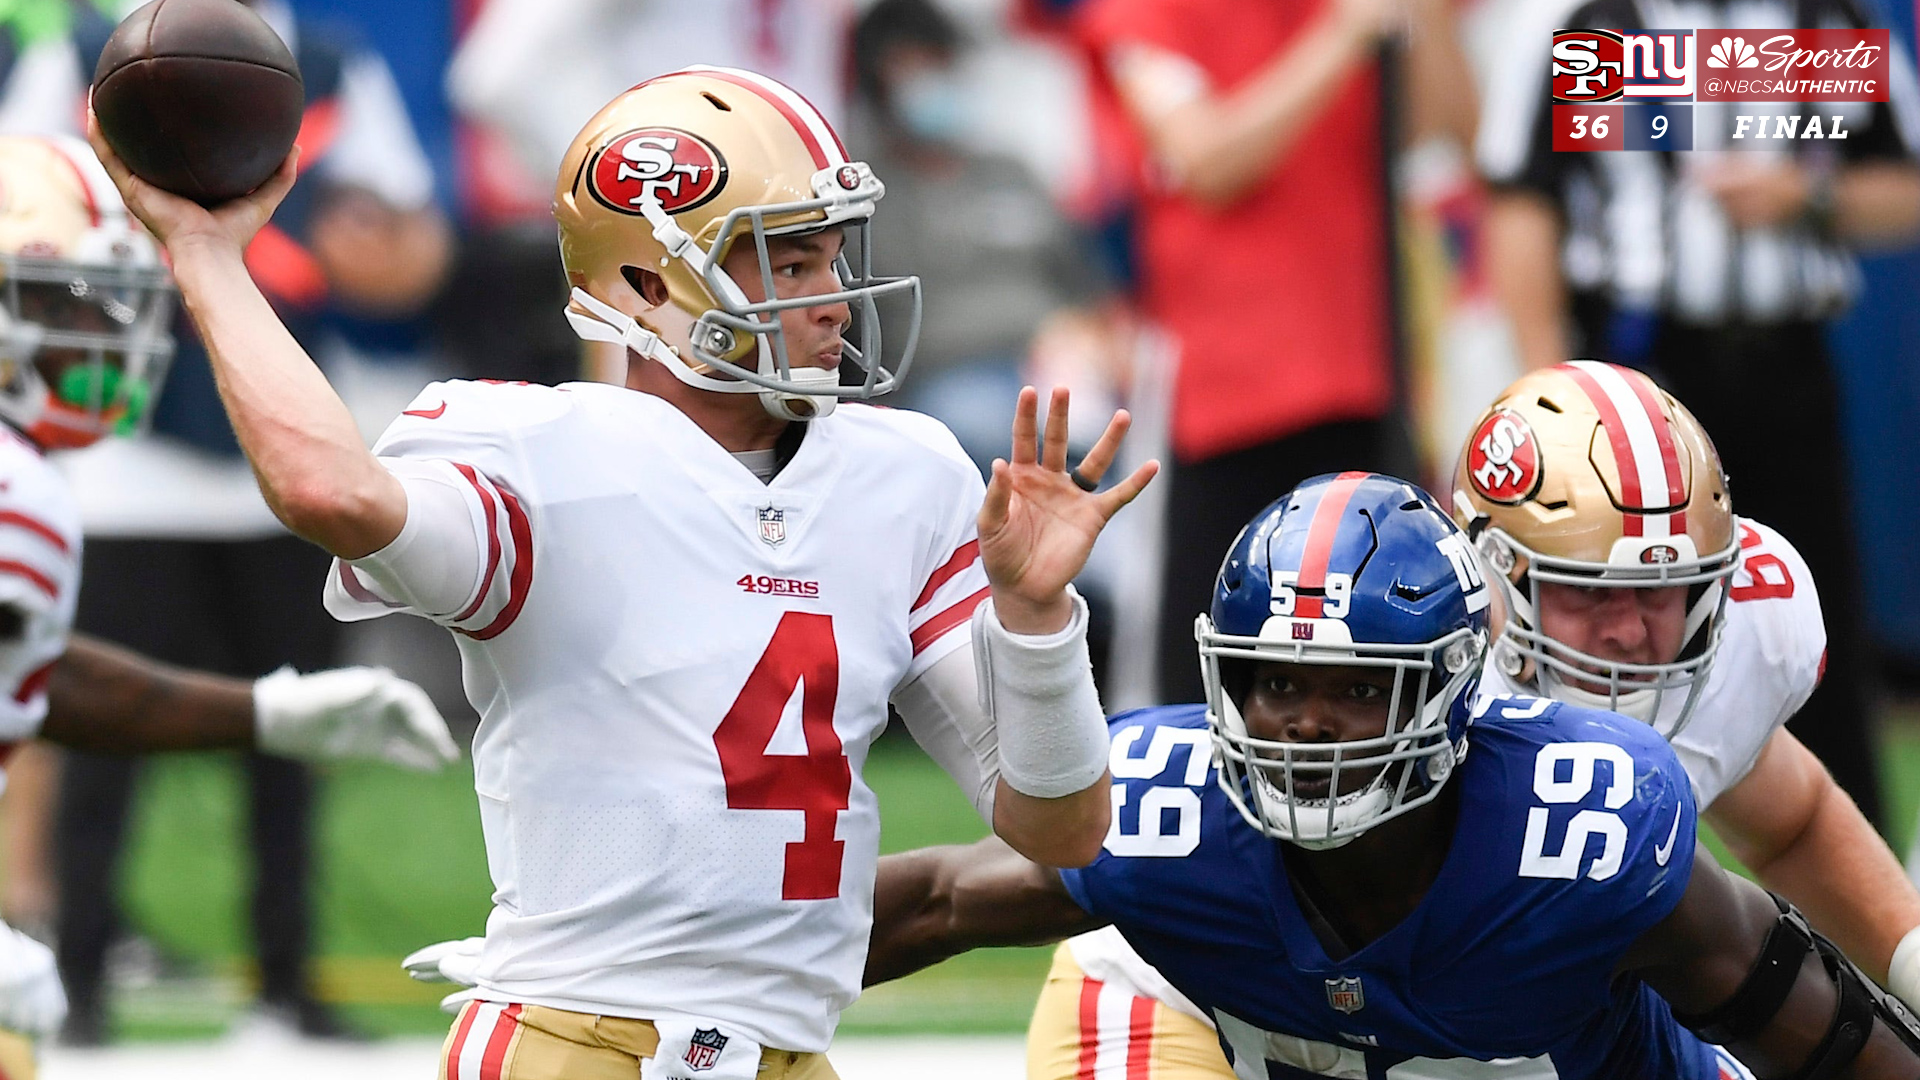 Nick Mullens 'let it rip' and picked up pylons in 49ers' win vs. Giants